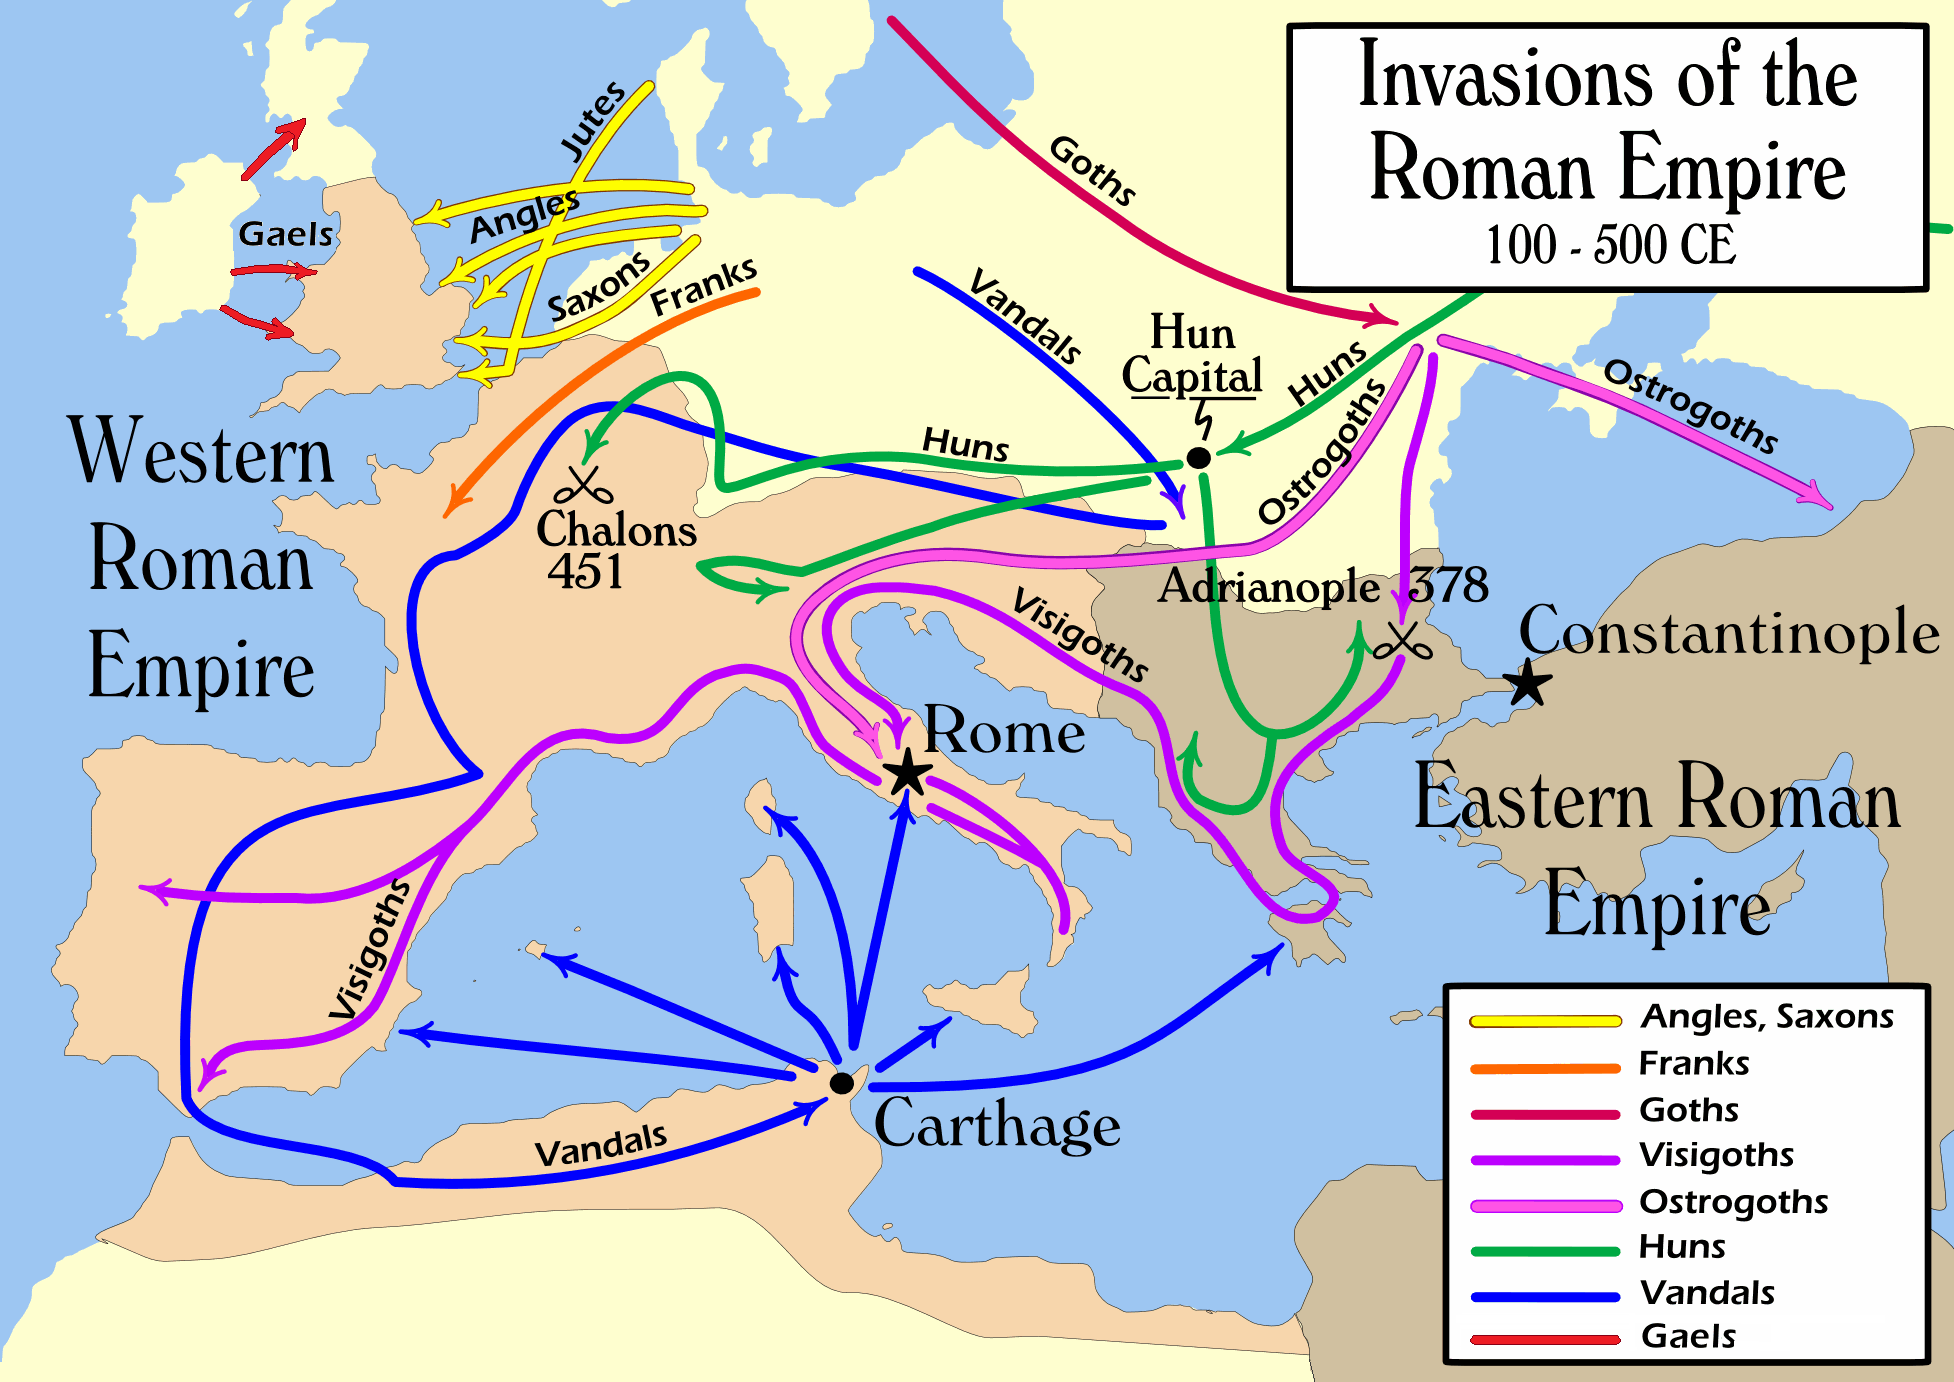 Foreign Invasions Against Rome